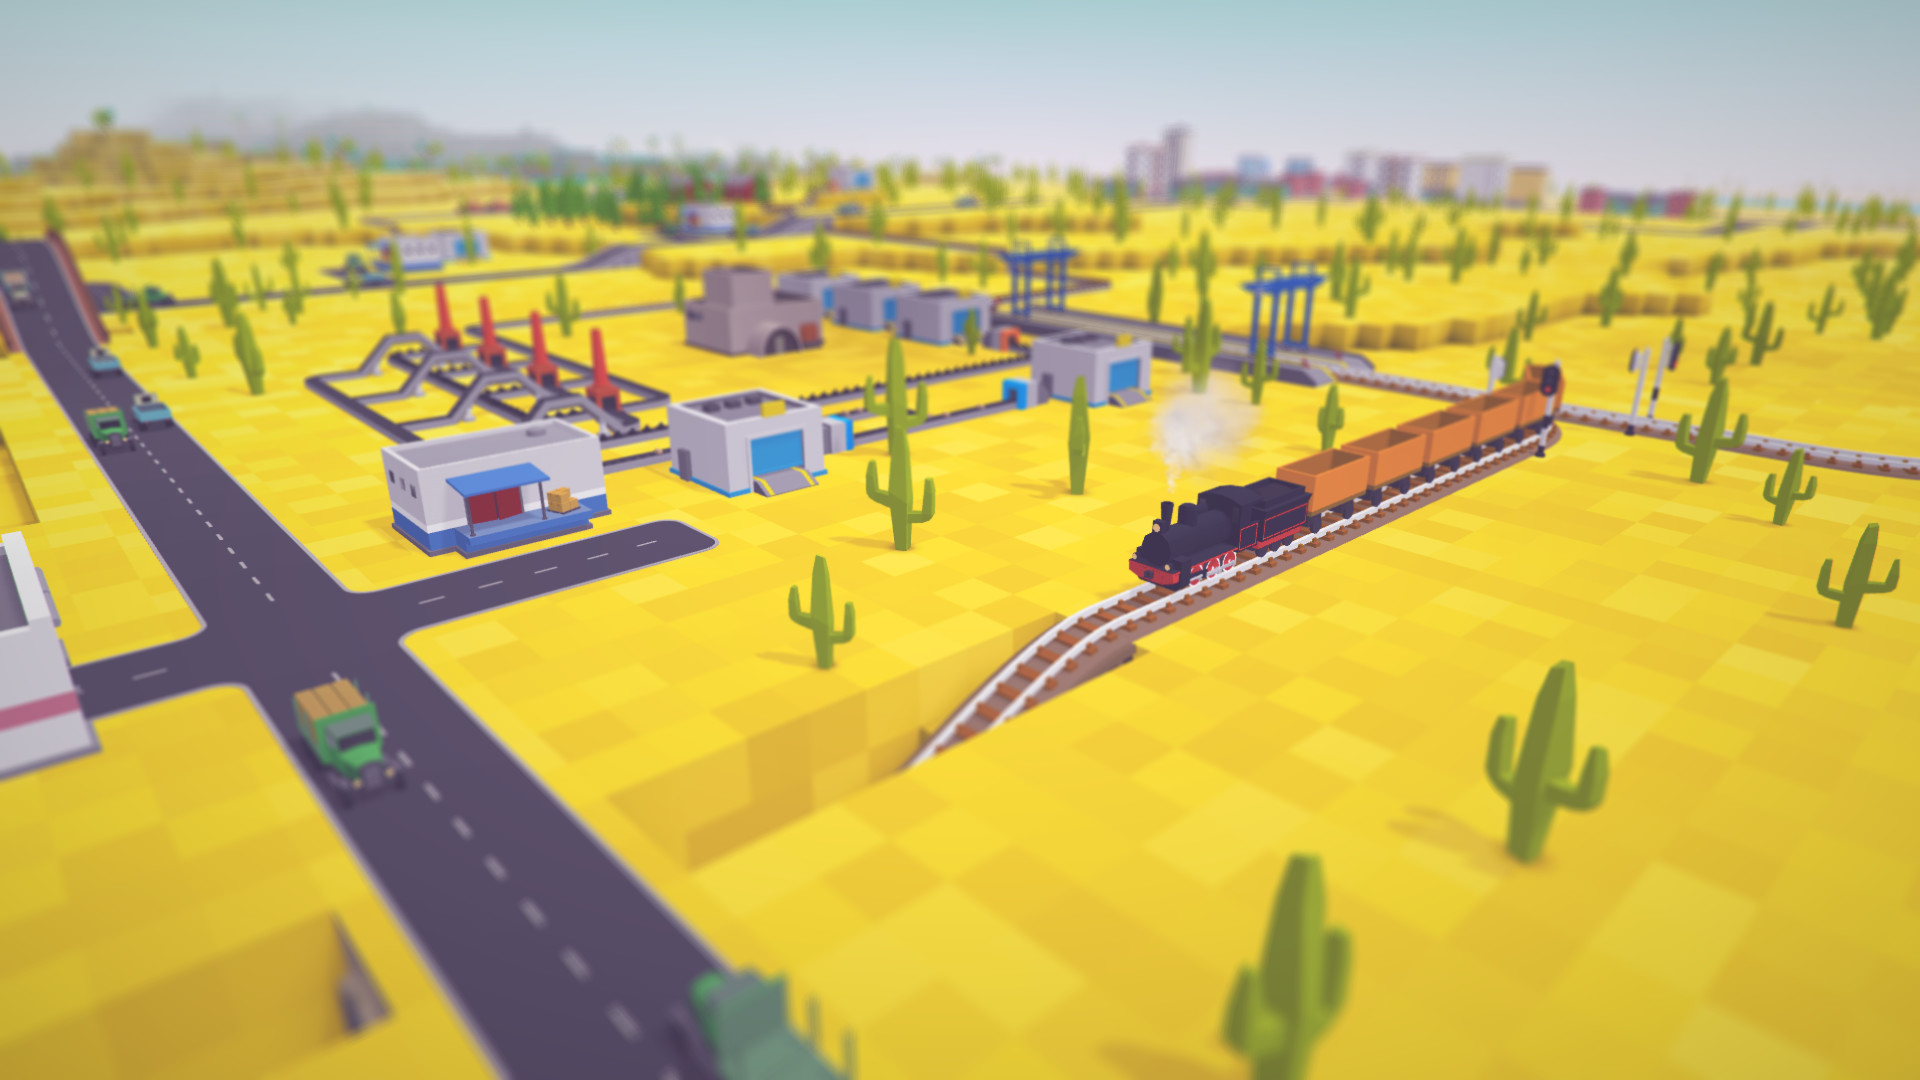 Destroy the cutest towns in strategy game Voxel Tycoon